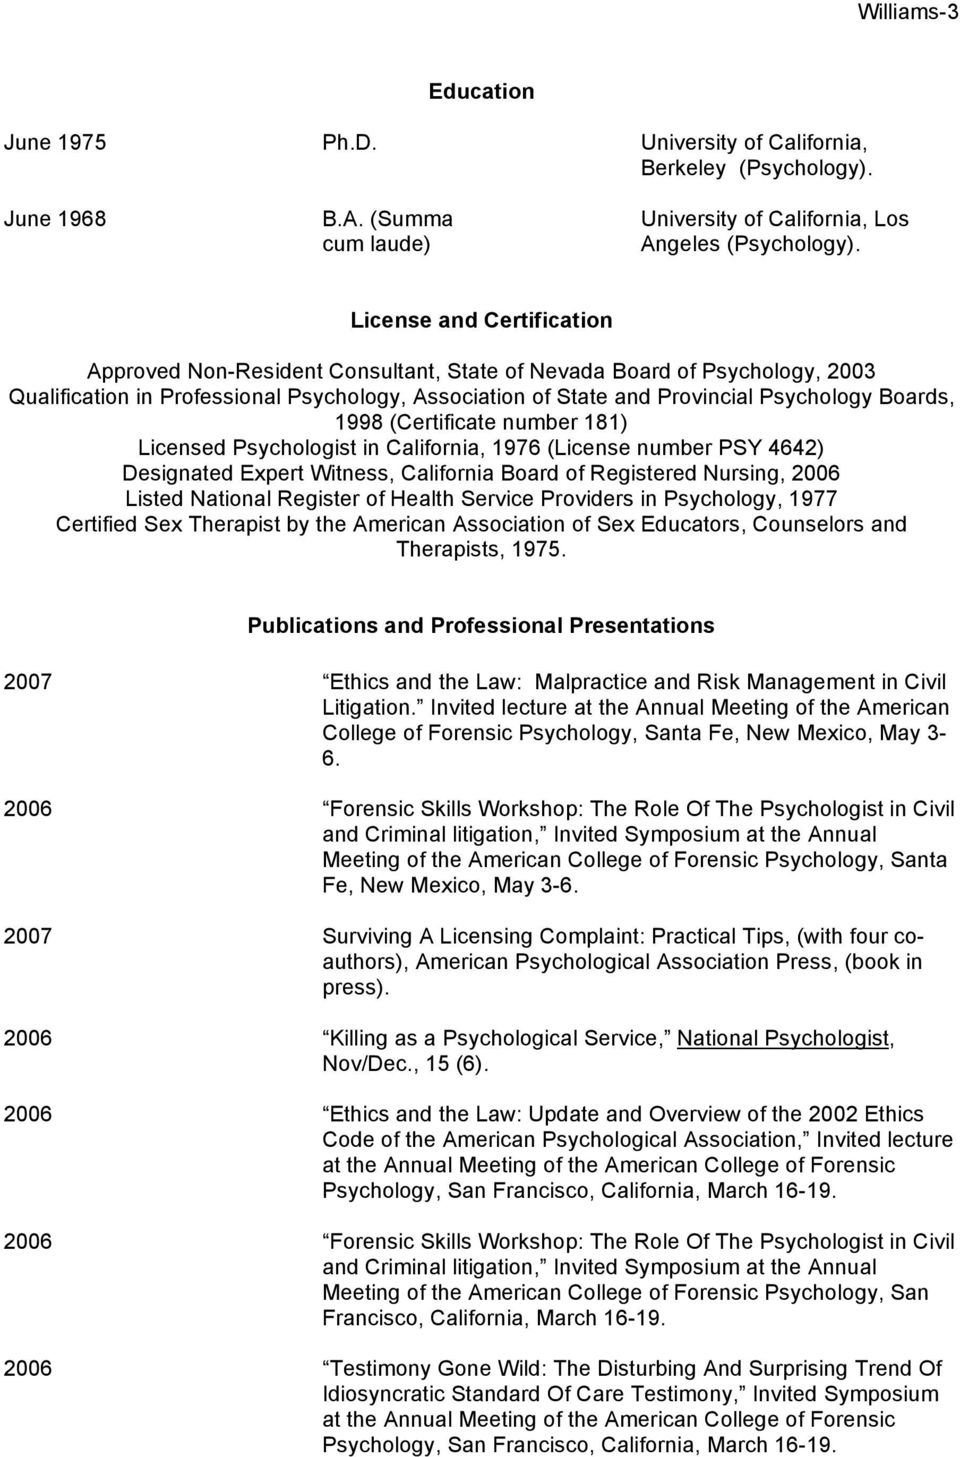 1998 (Certificate number 181) Licensed Psychologist in California, 1976 (License number PSY 4642) Designated Expert Witness, California Board of Registered Nursing, 2006 Listed National Register of